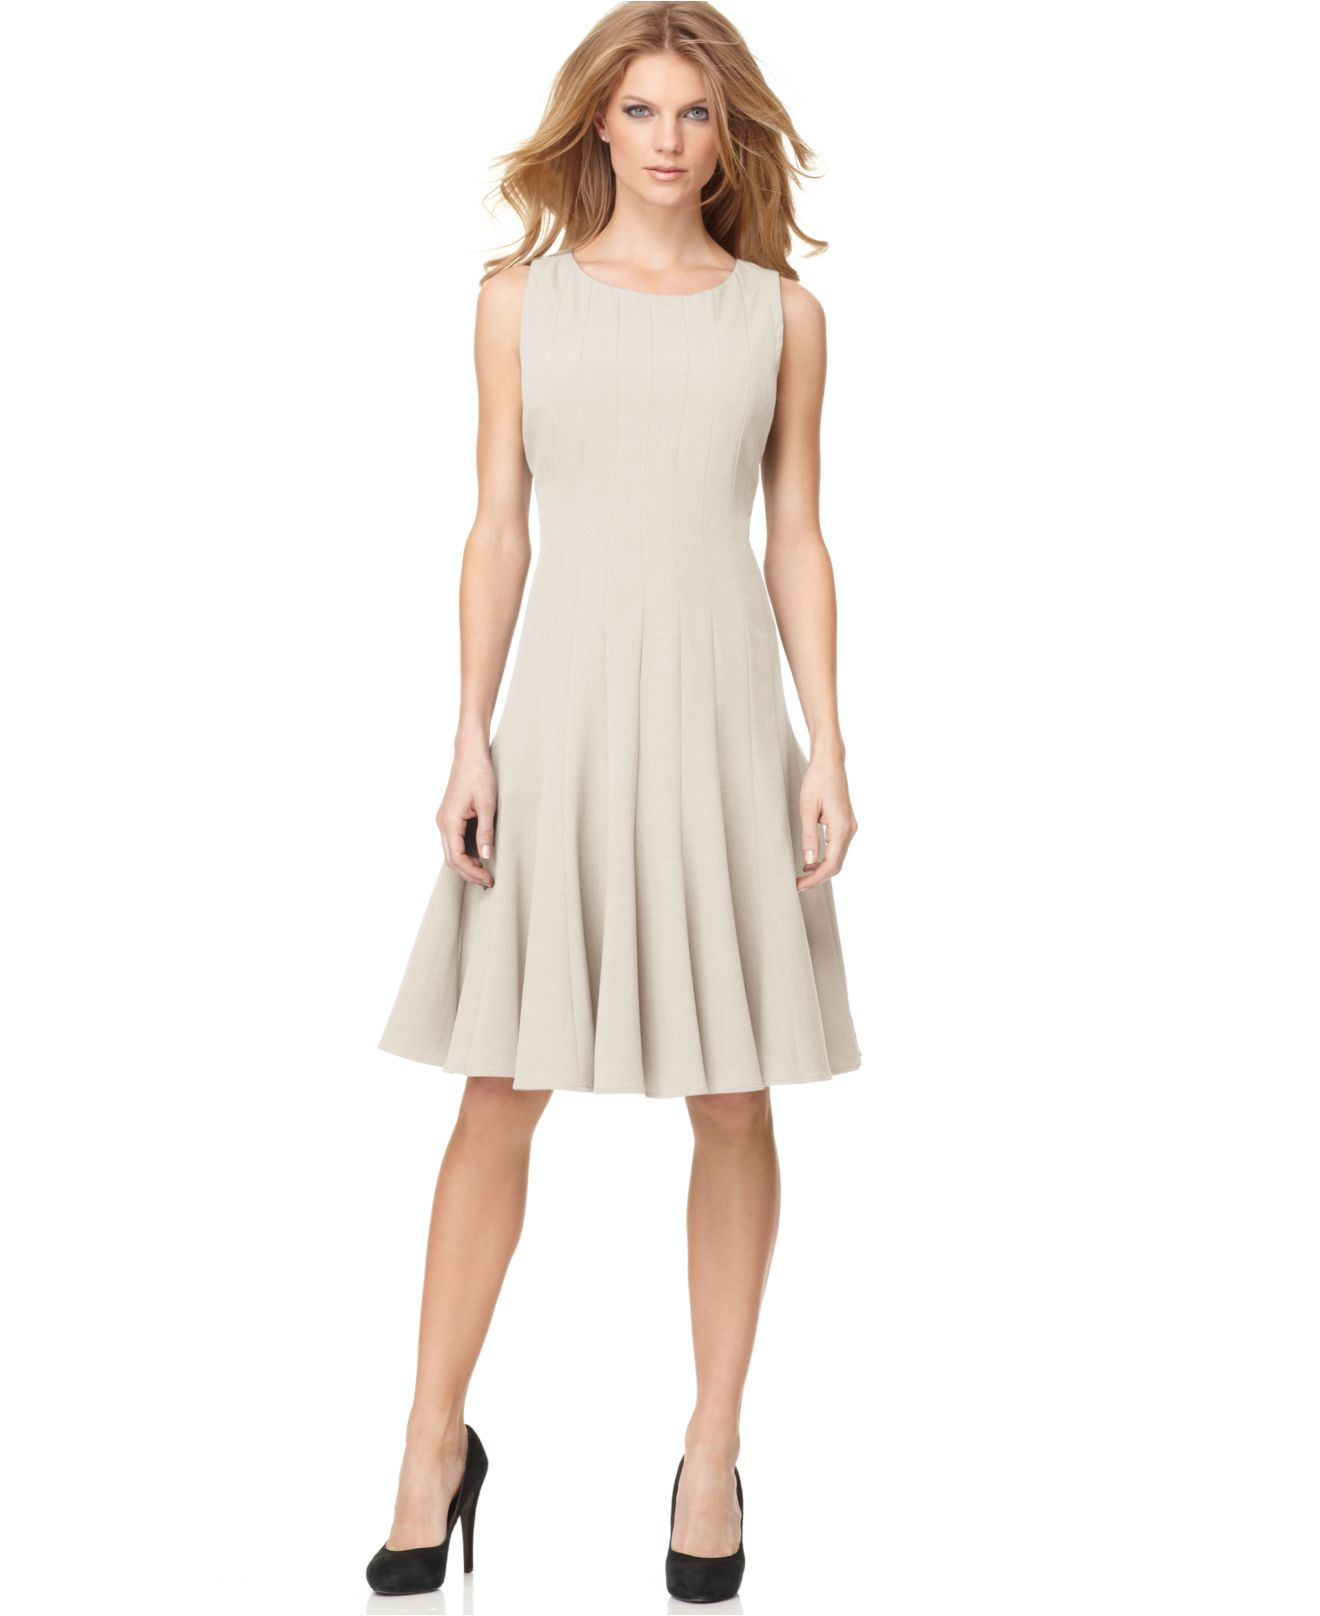 Calvin Klein Petite Sleeveless Seamed Dress In Natural | Lyst